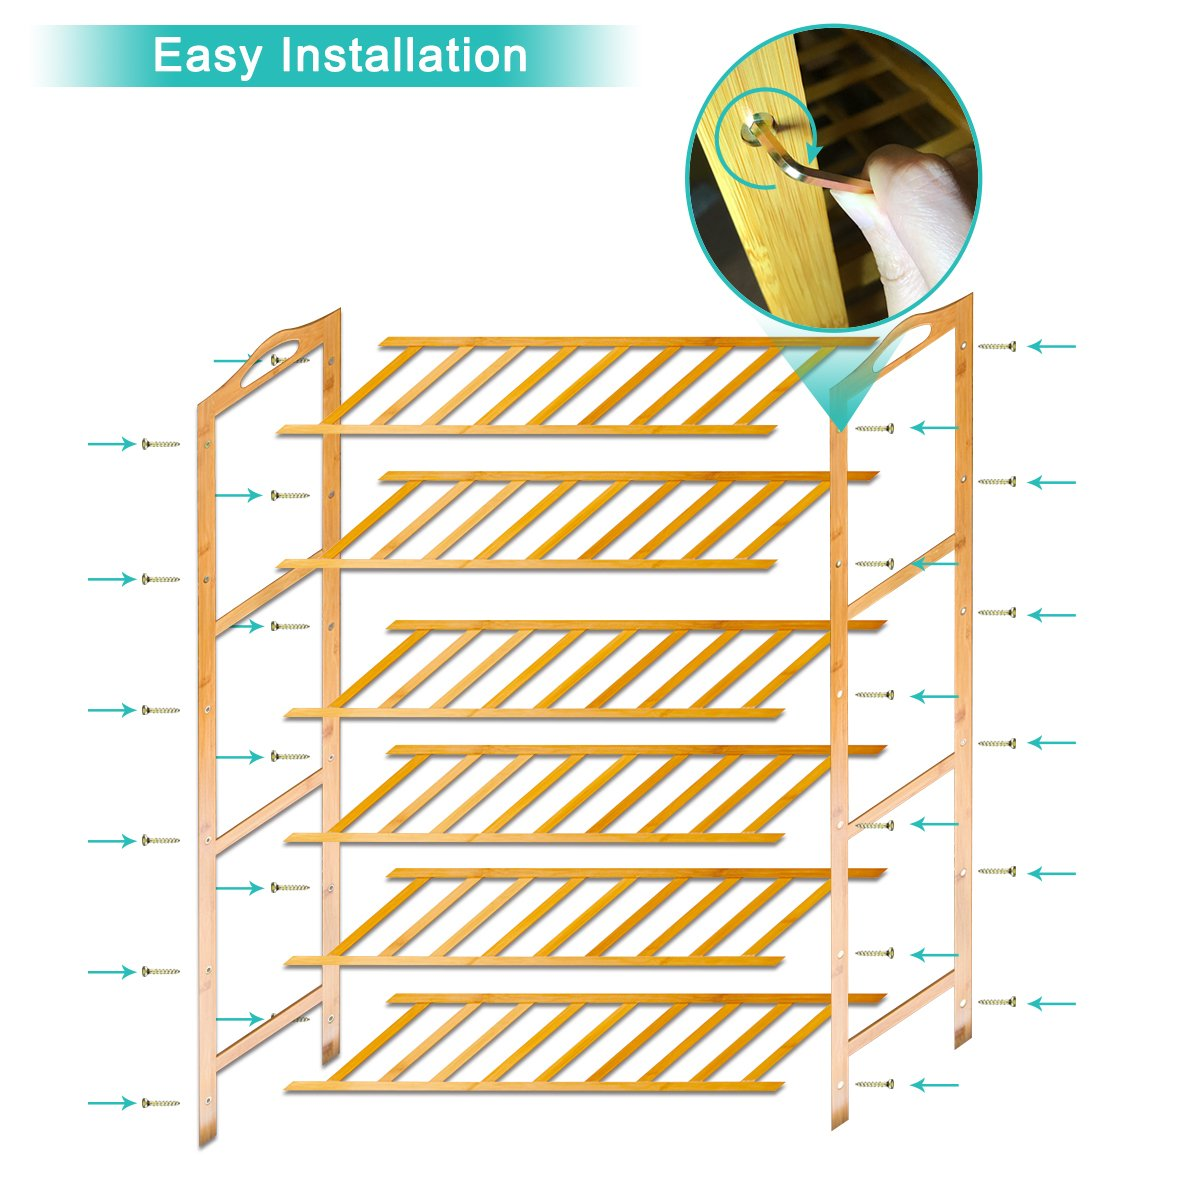 ANKO Bamboo Shoe Rack, 100% Natural Bamboo Thickened 6-Tier Mesh Utility Entryway Shoe Shelf Storage Organizer Suitable for Entryway, Closet, Living Room, Bedroom. (1 PACK) by ANKO (Image #6)